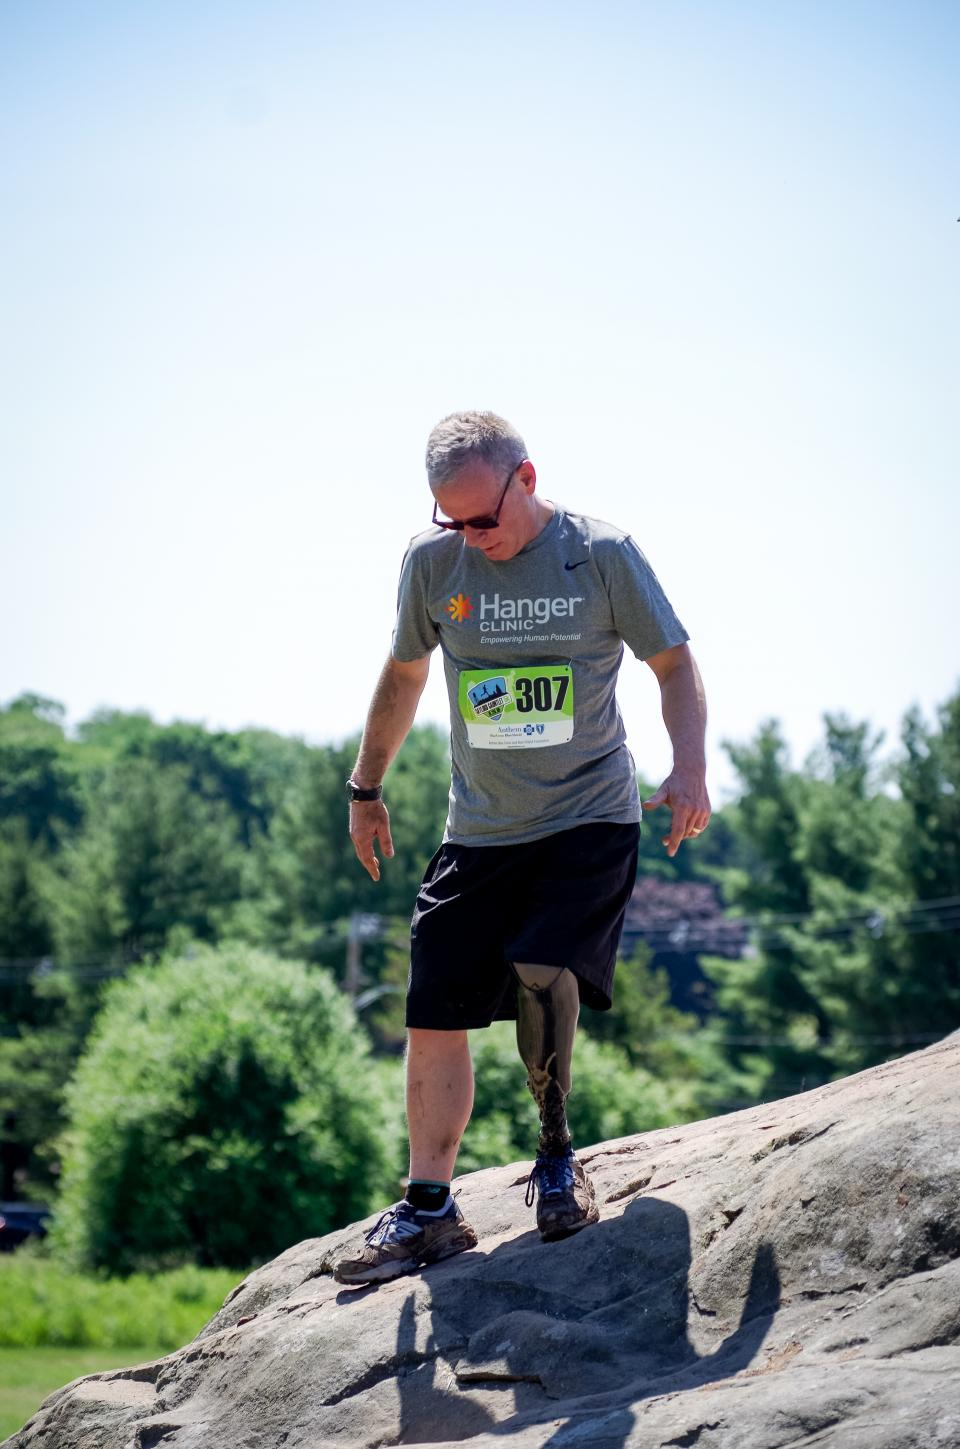 people, man, sunny, day, adventure, outdoor, nature, rock, tree, plant, blue, sky, cloud, blur, hiking, fitness, exercise, health